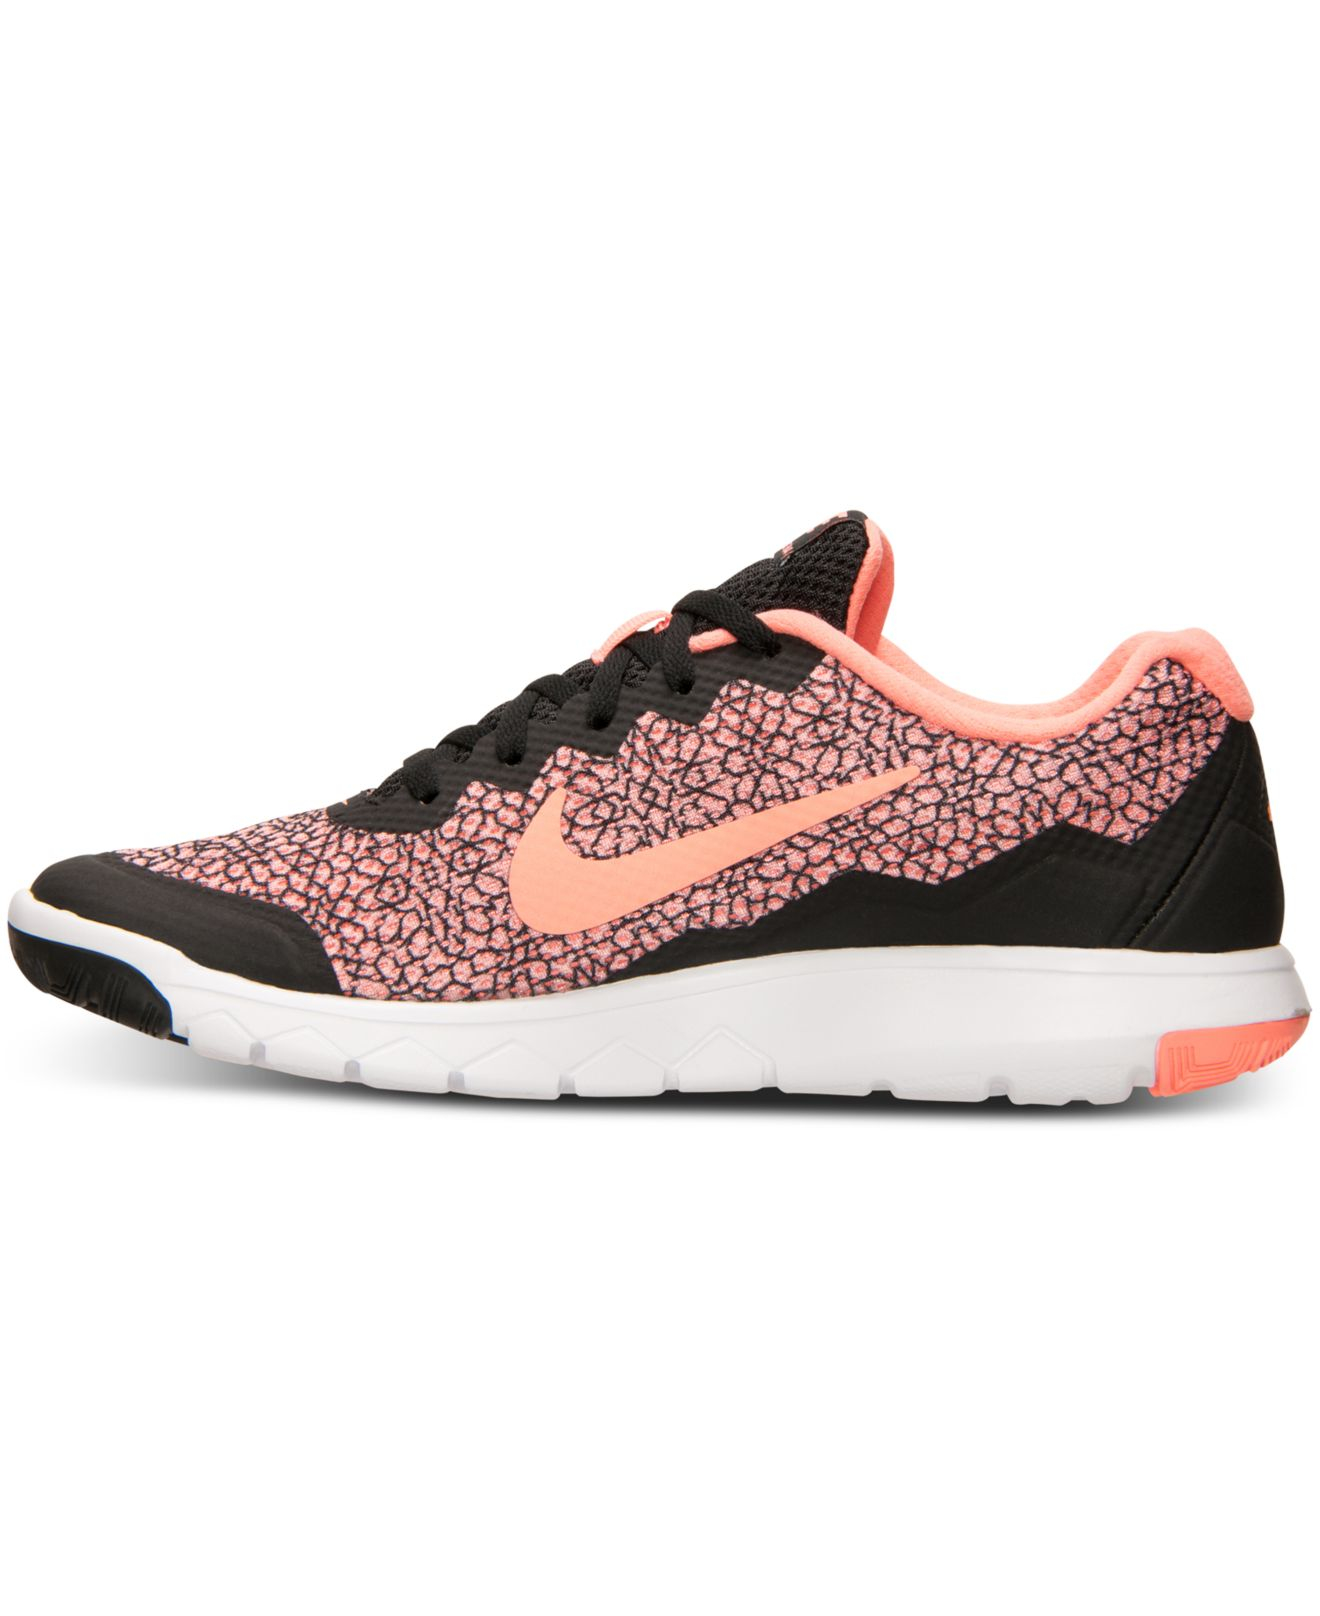 Lyst - Nike Women s Flex Experience Run 4 Premium Running Sneakers From  Finish Line in Pink 6338ab6e8